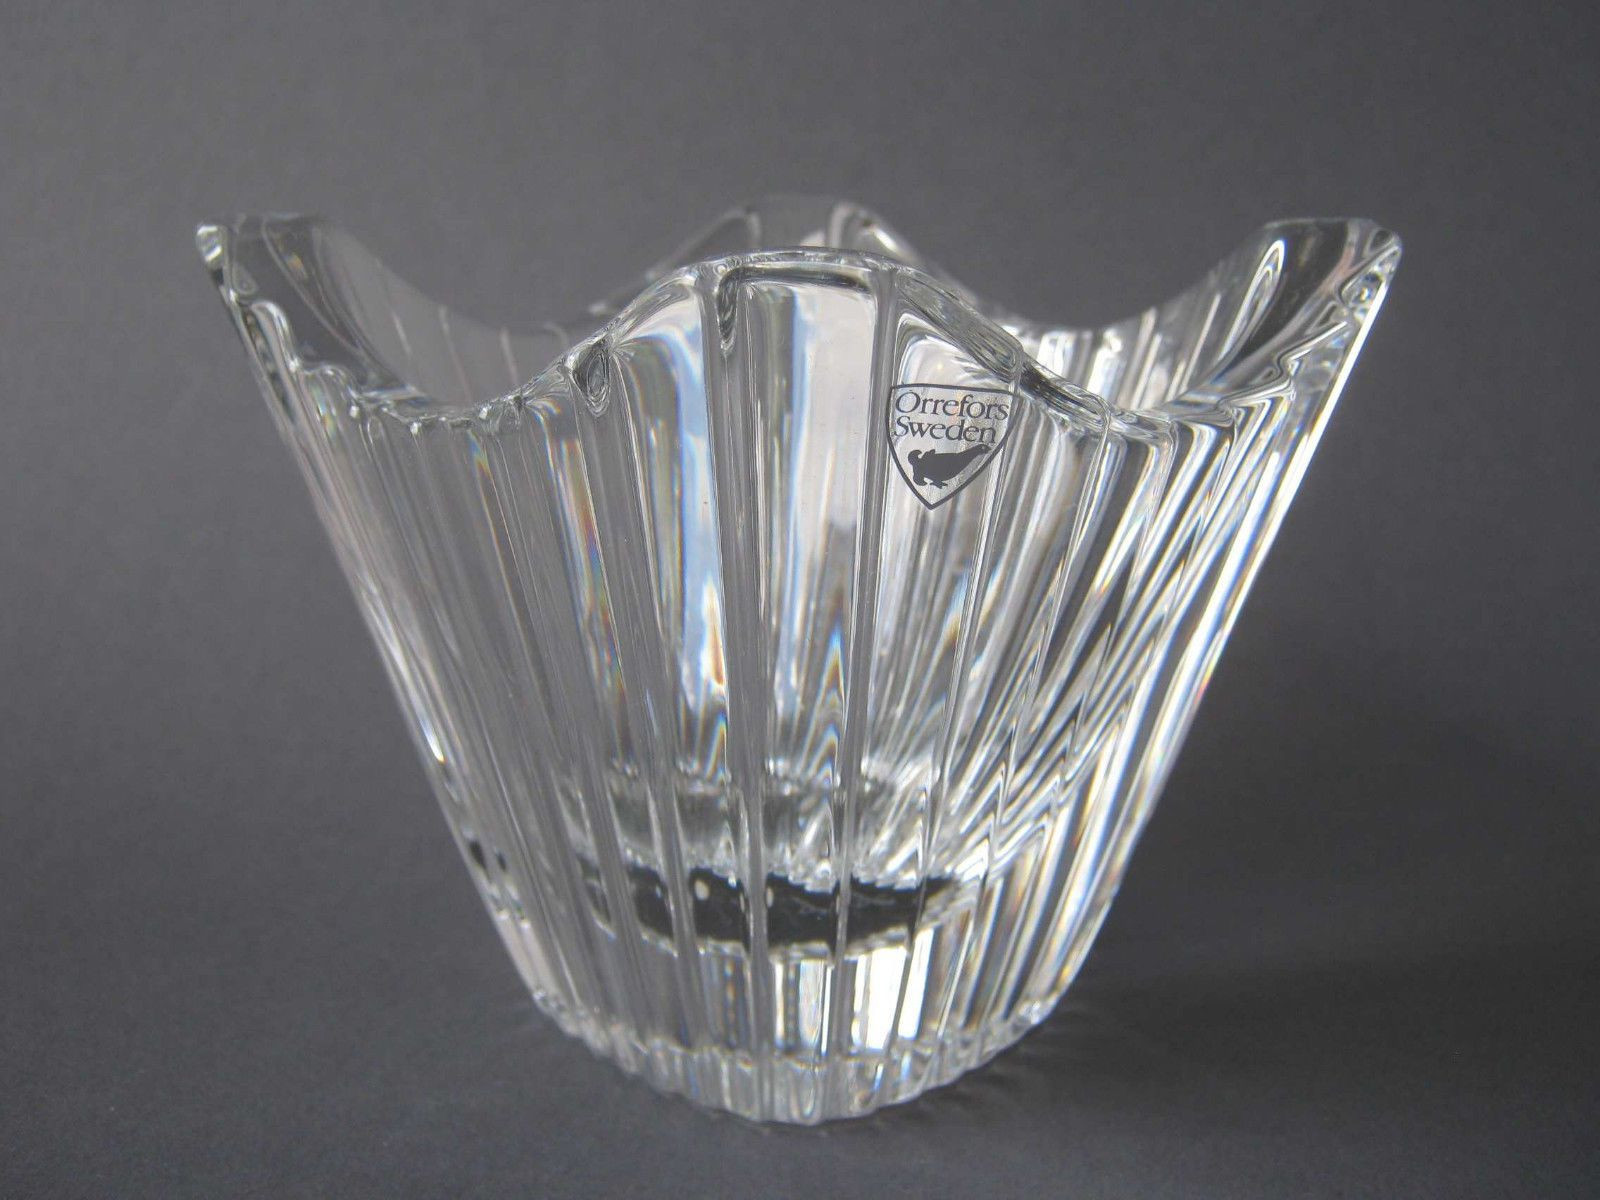 scandinavian glass vase of 49 orrefors sweden vase the weekly world regarding glas vase schale orrefors sweden signiert original label glass